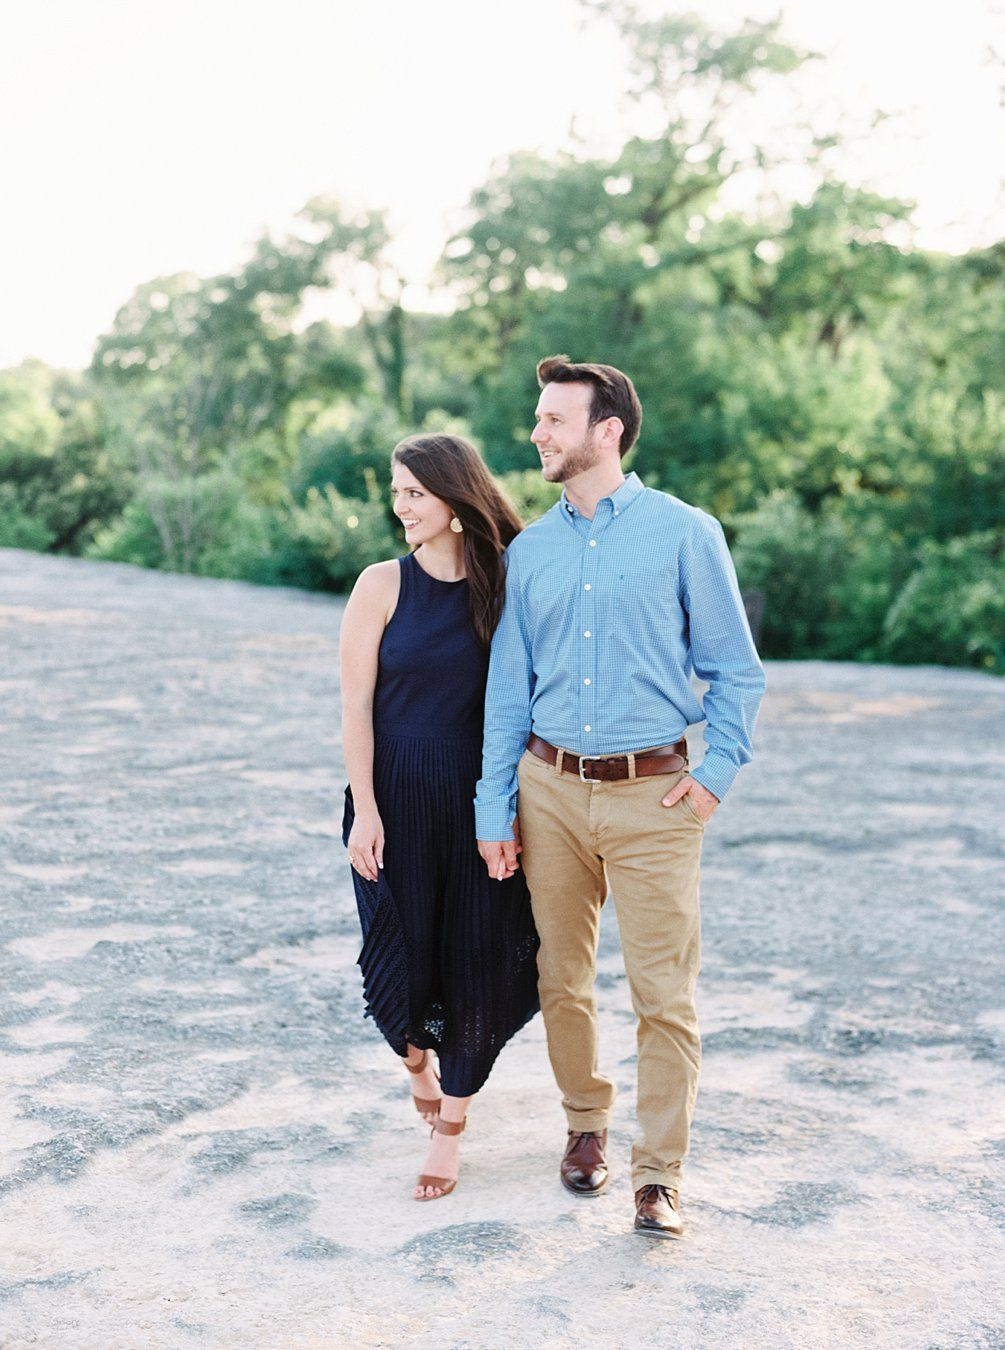 What Colors To Wear For Engagement Pictures